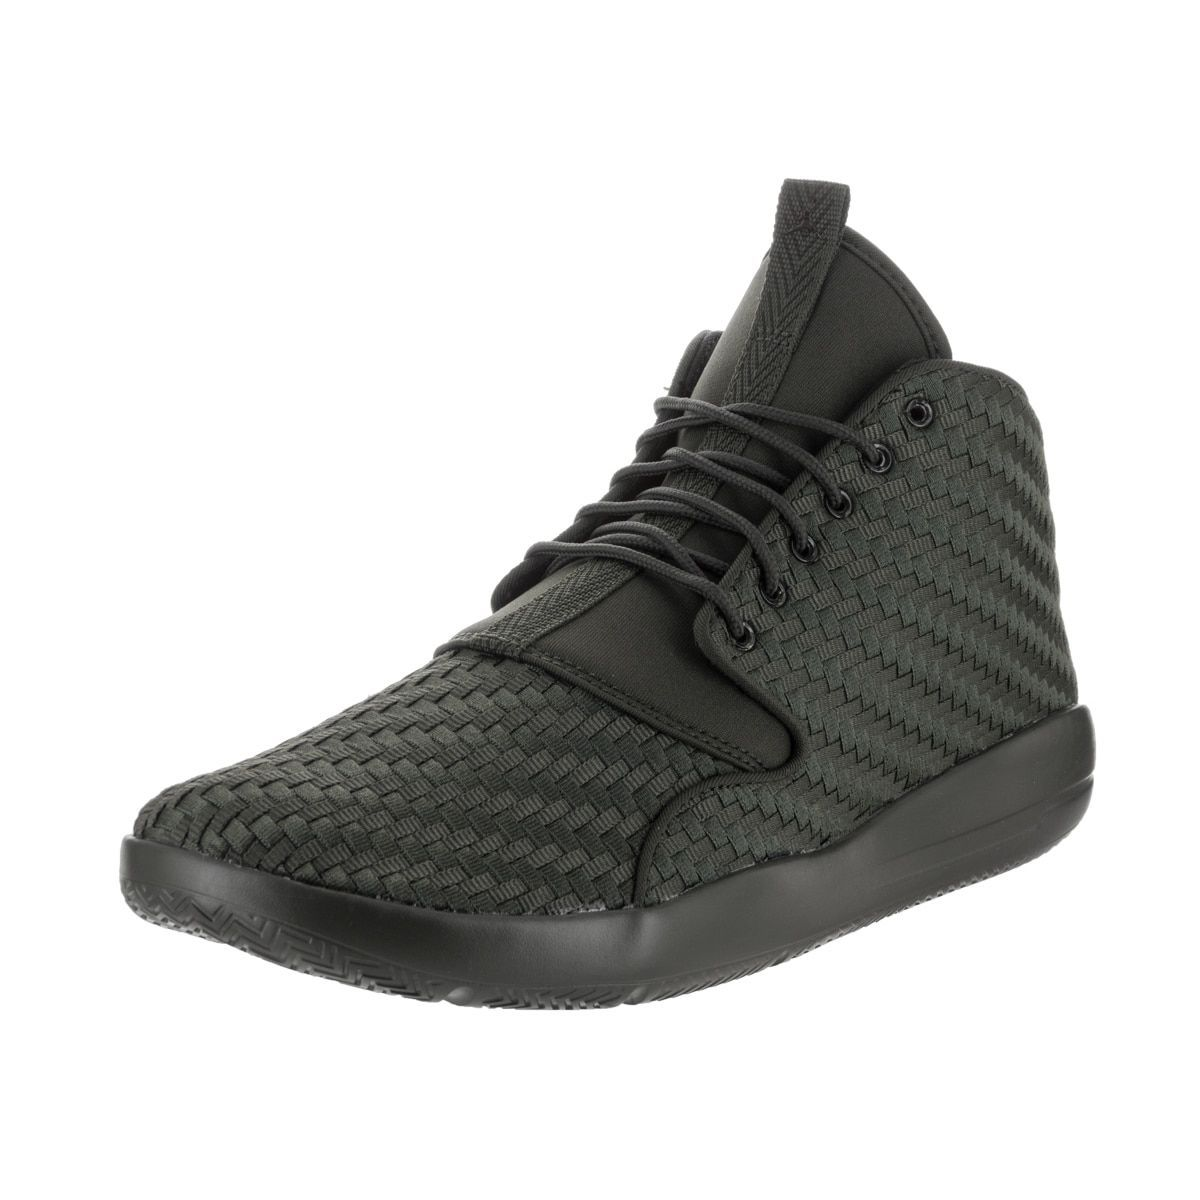 Nike Jordan Men's Jordan Eclipse Chukka Basketball Shoes